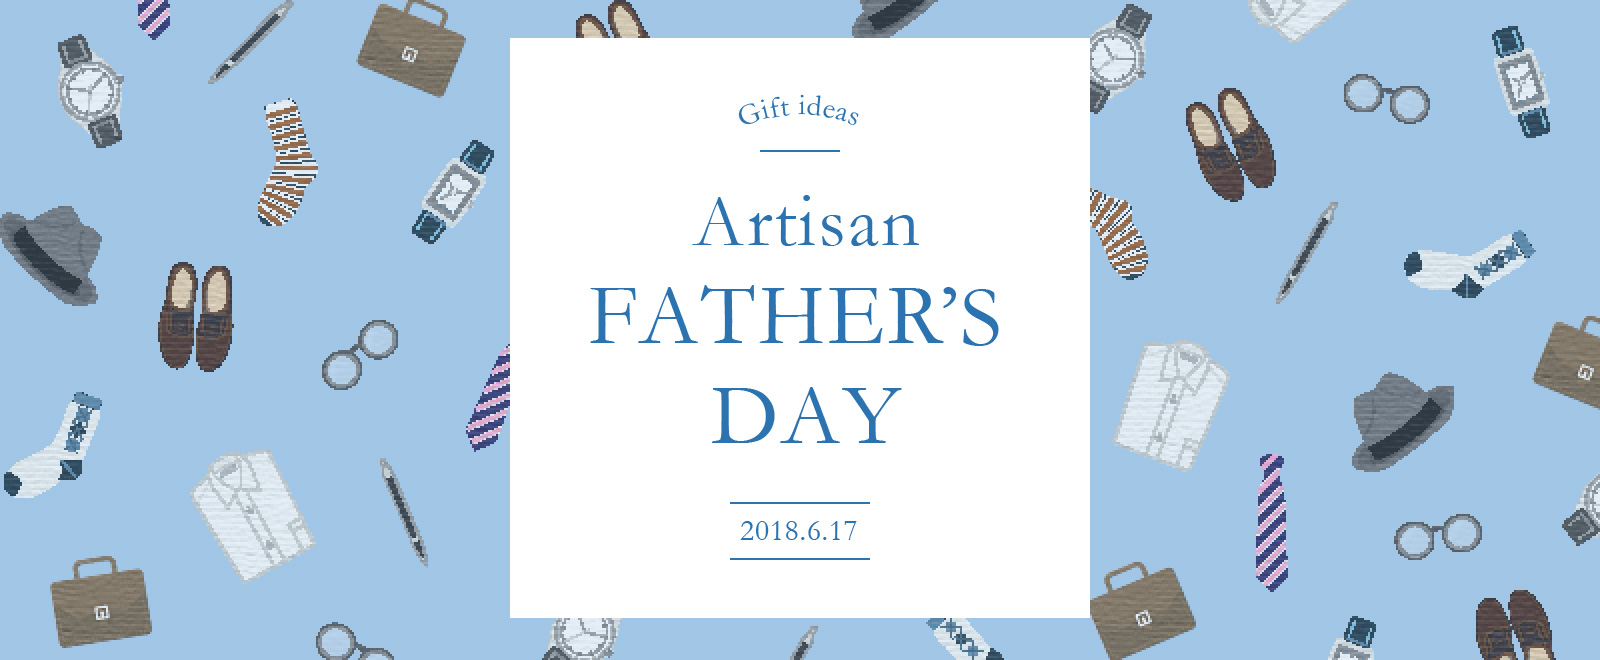 Artisan MOTHER'S DAY Gift ideas